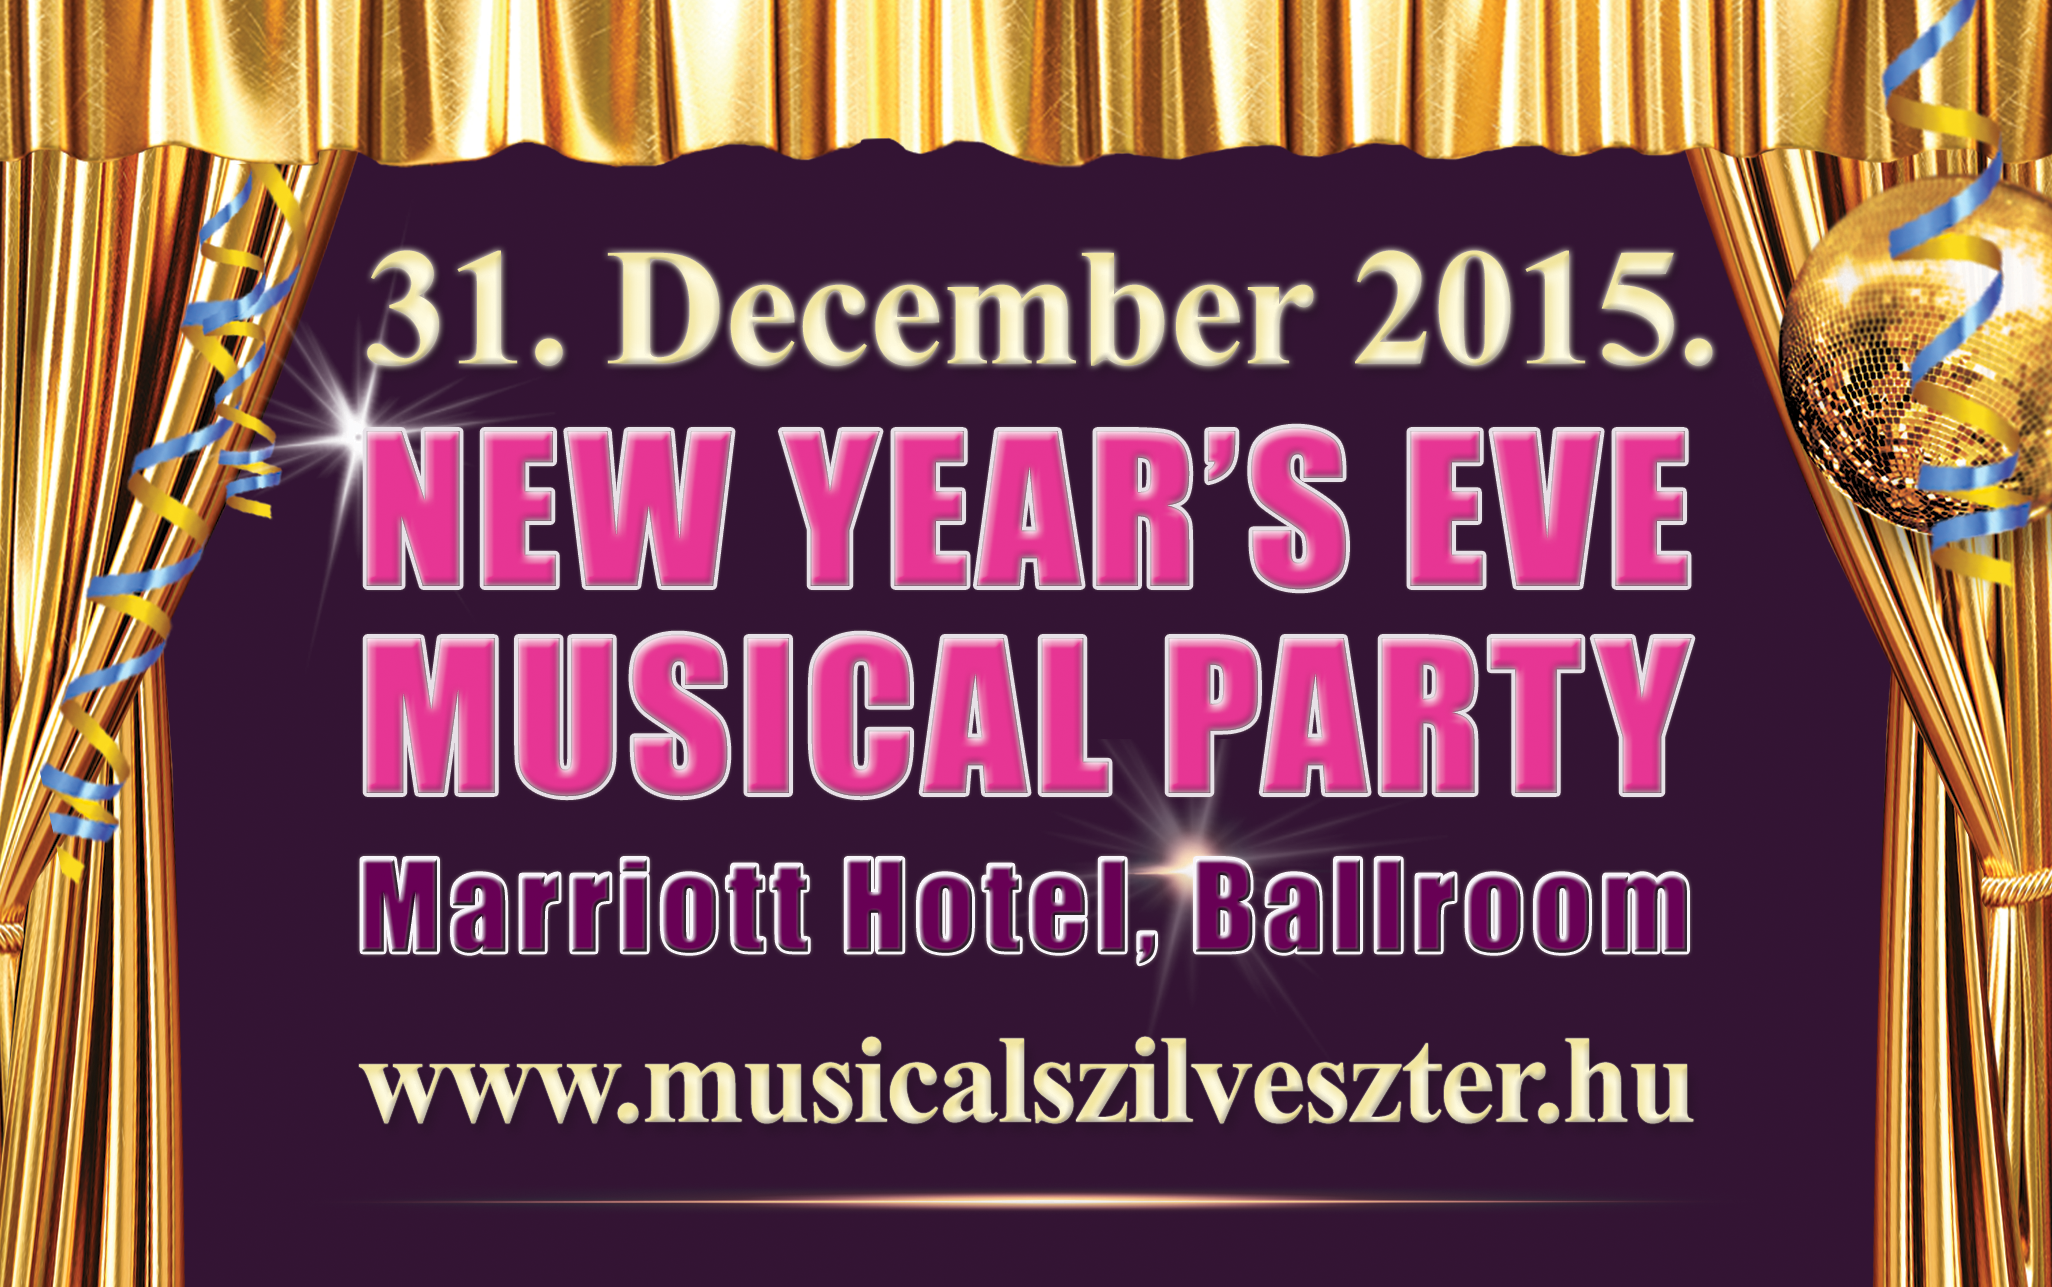 New Year's Eve Musical Party, Marriott Budapest Ballroom